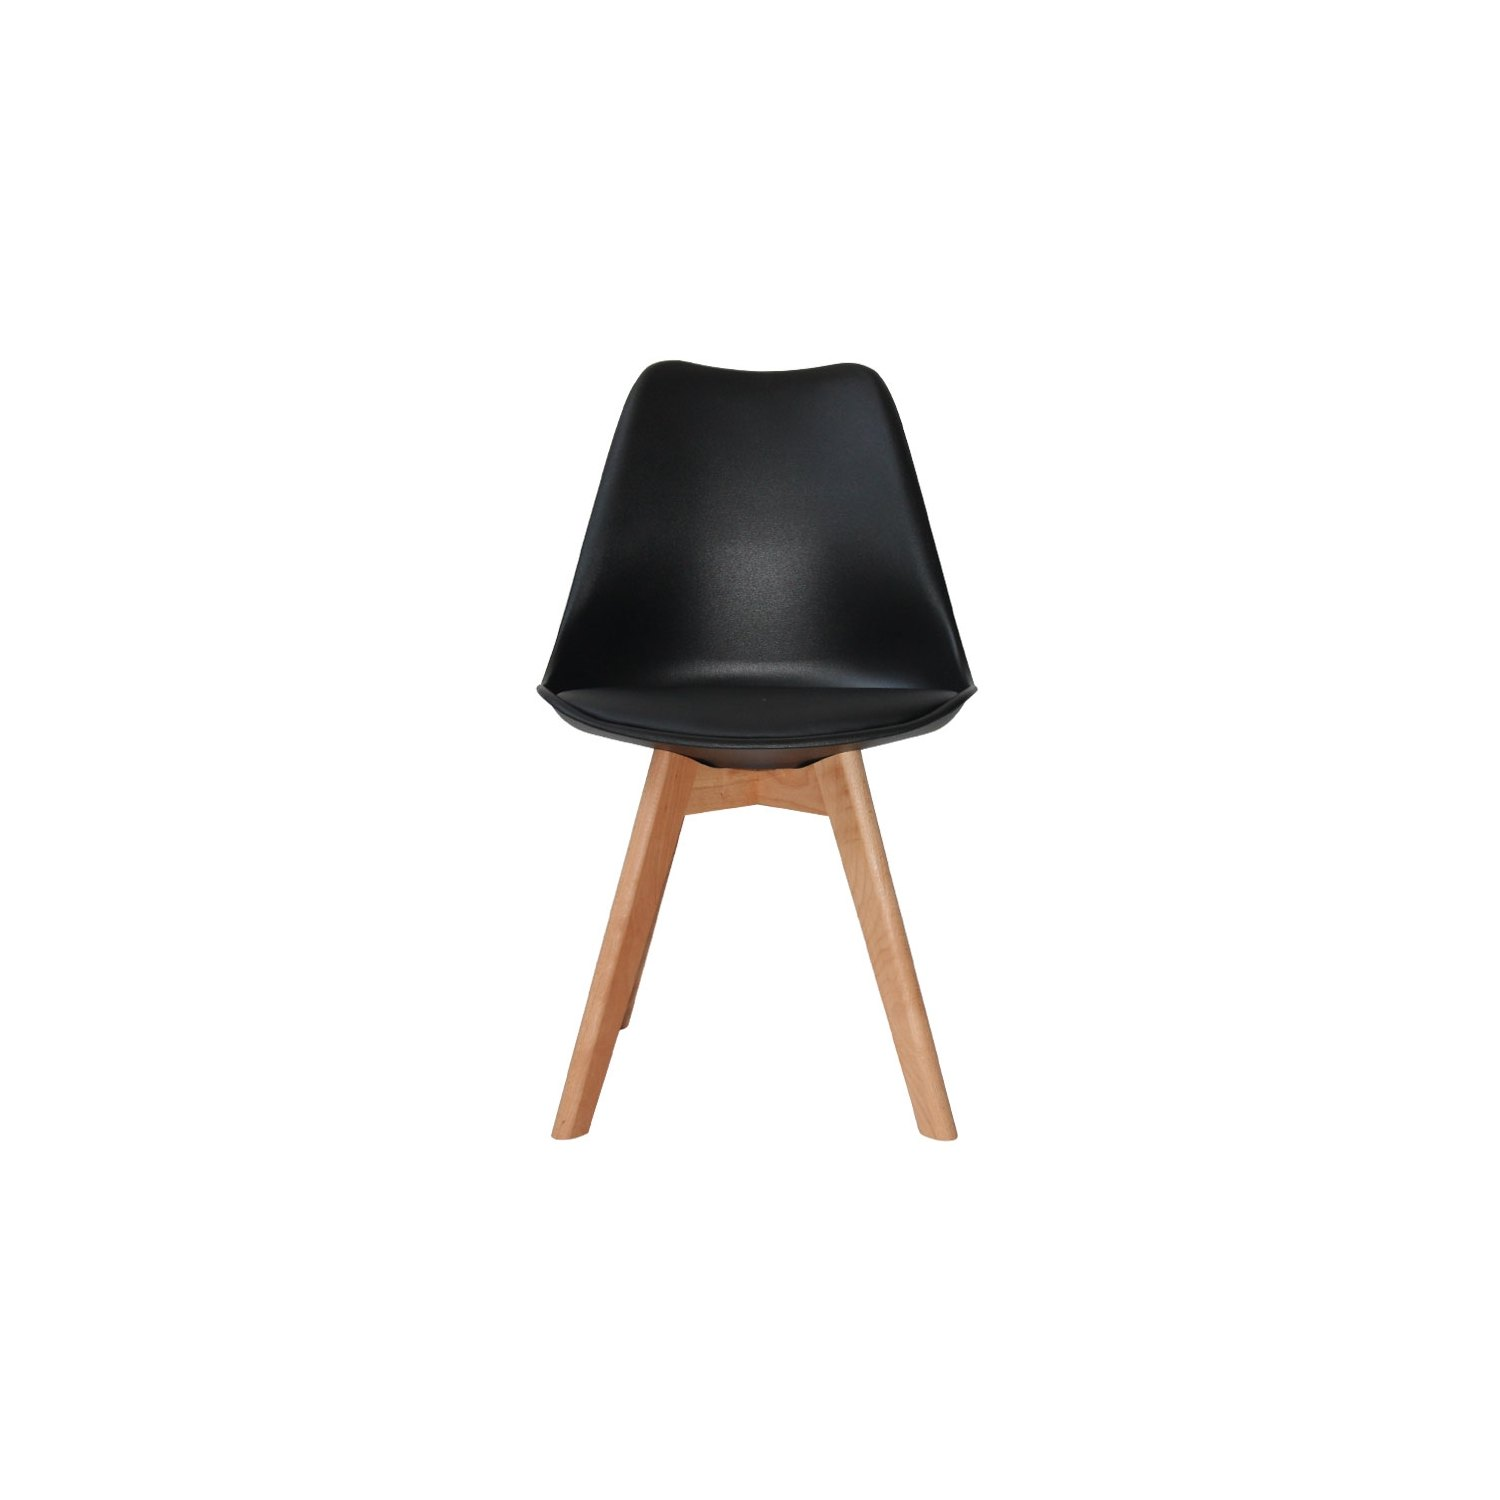 chaise new tower wood noire acheter online chaise tower. Black Bedroom Furniture Sets. Home Design Ideas